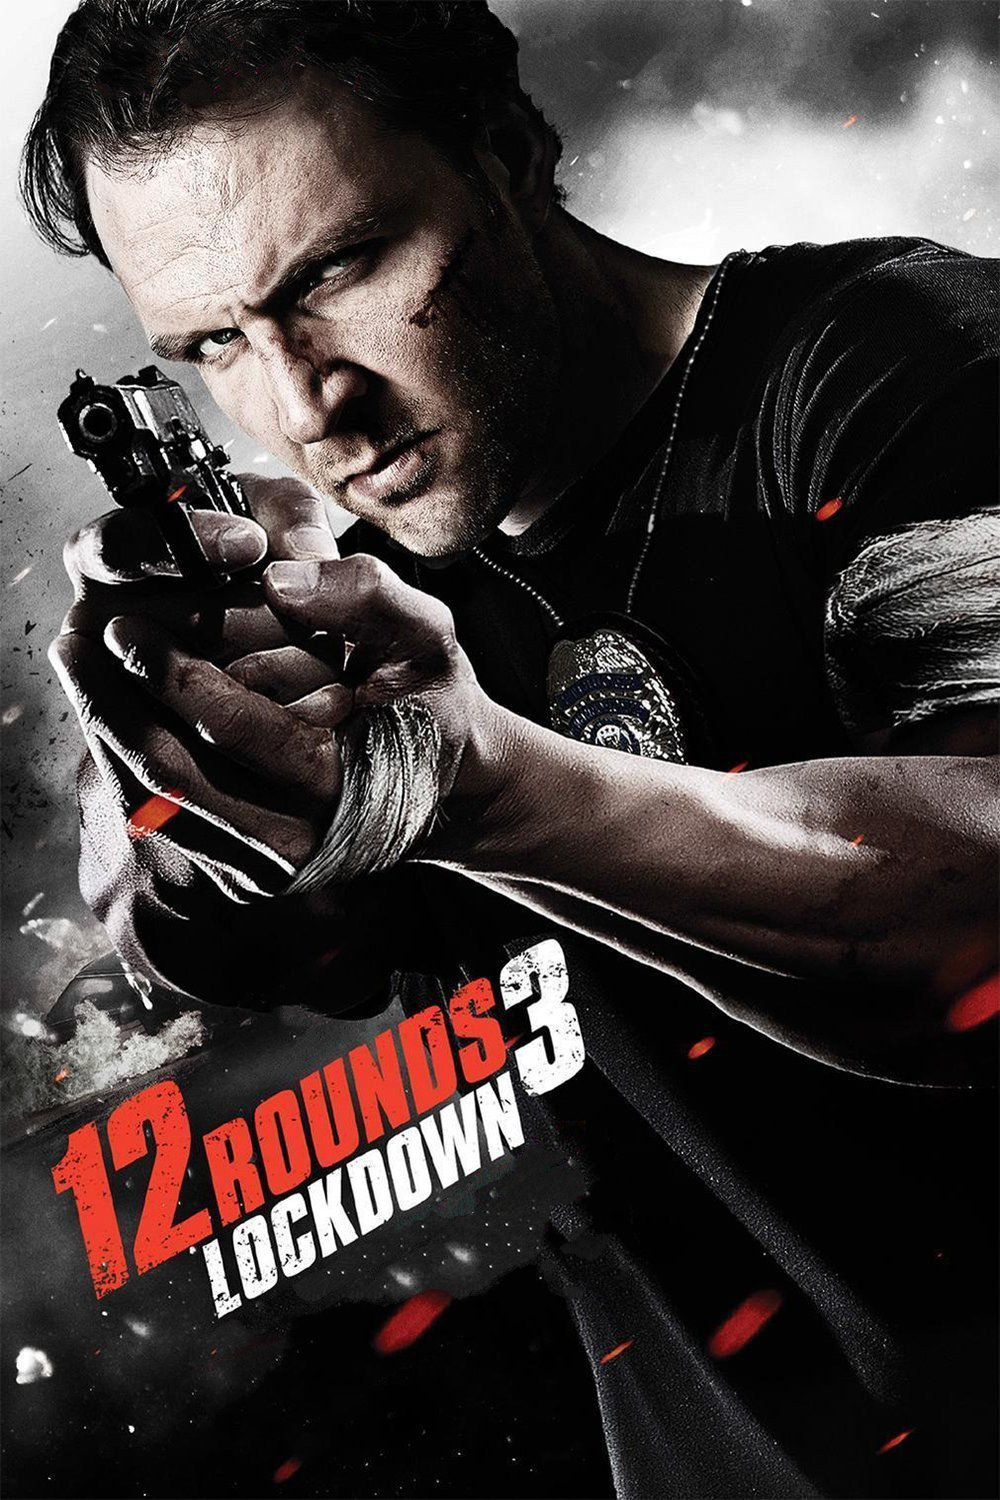 affiche du film 12 Rounds 3: Lockdown